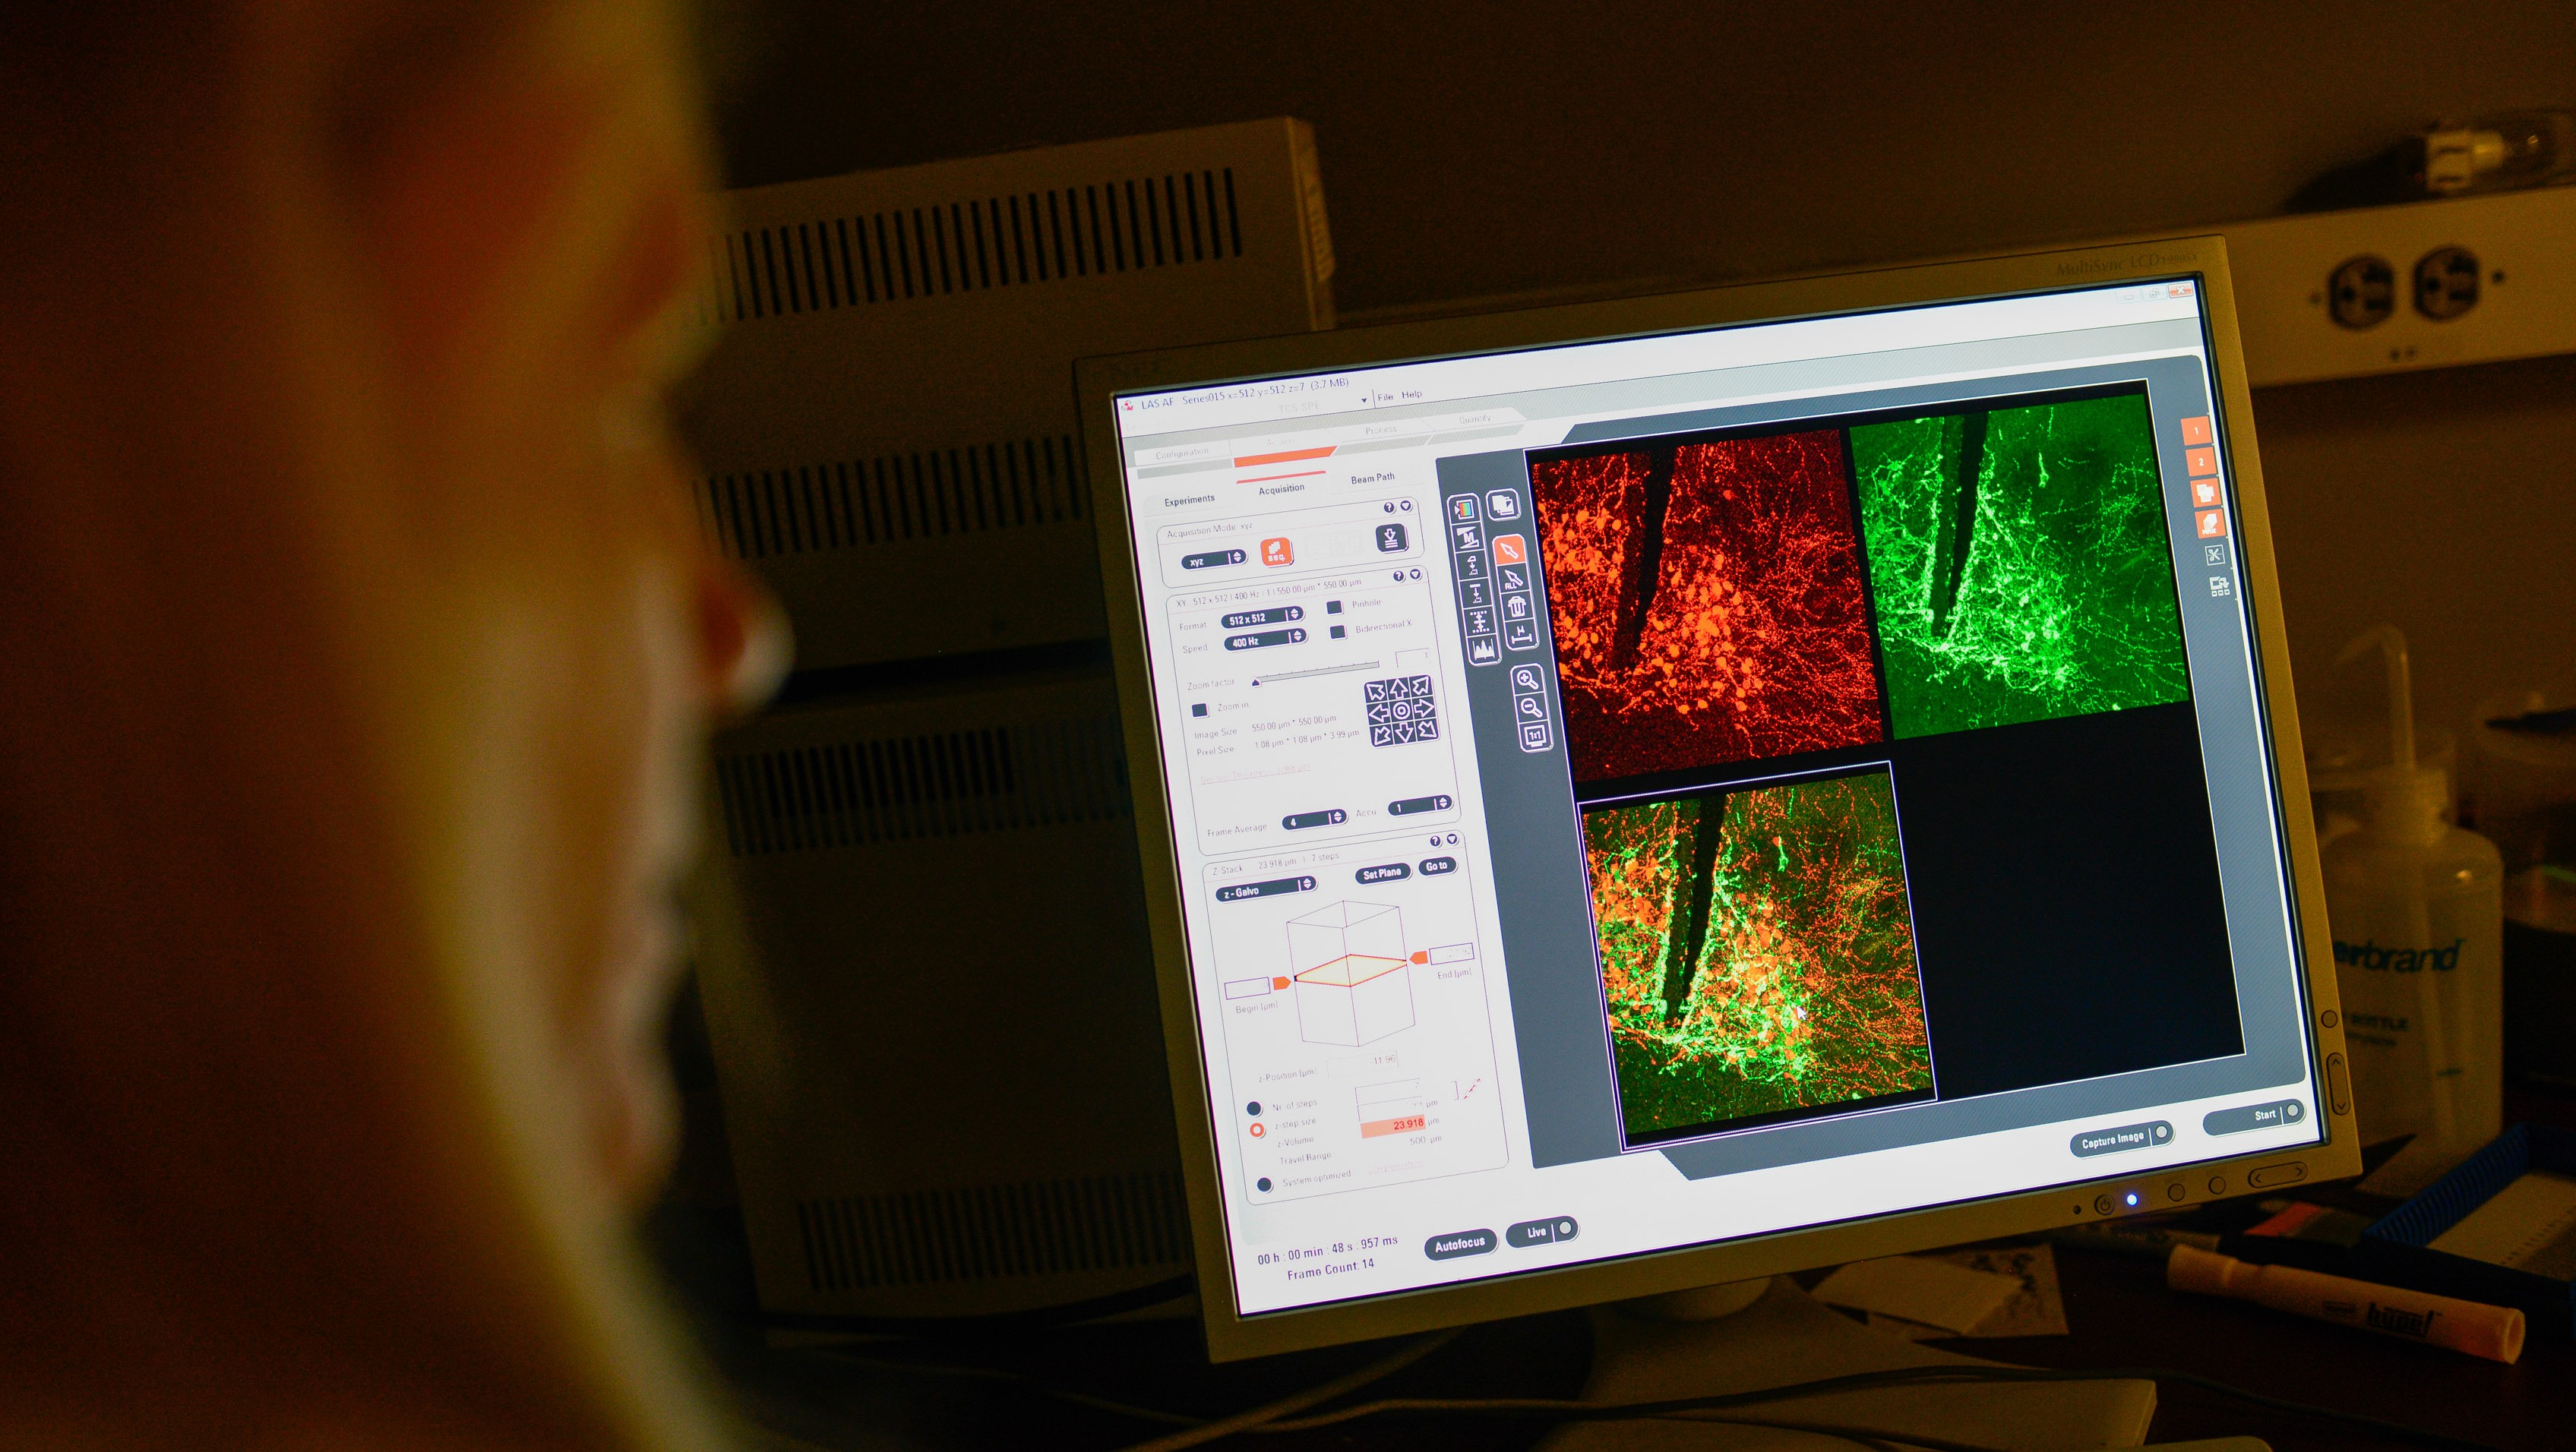 Heather Patisaul studies how chemicals in the environment affect us. In this image, she's examining neurons in the brain of a laboratory rat colored by a process called immunohistochemistry.